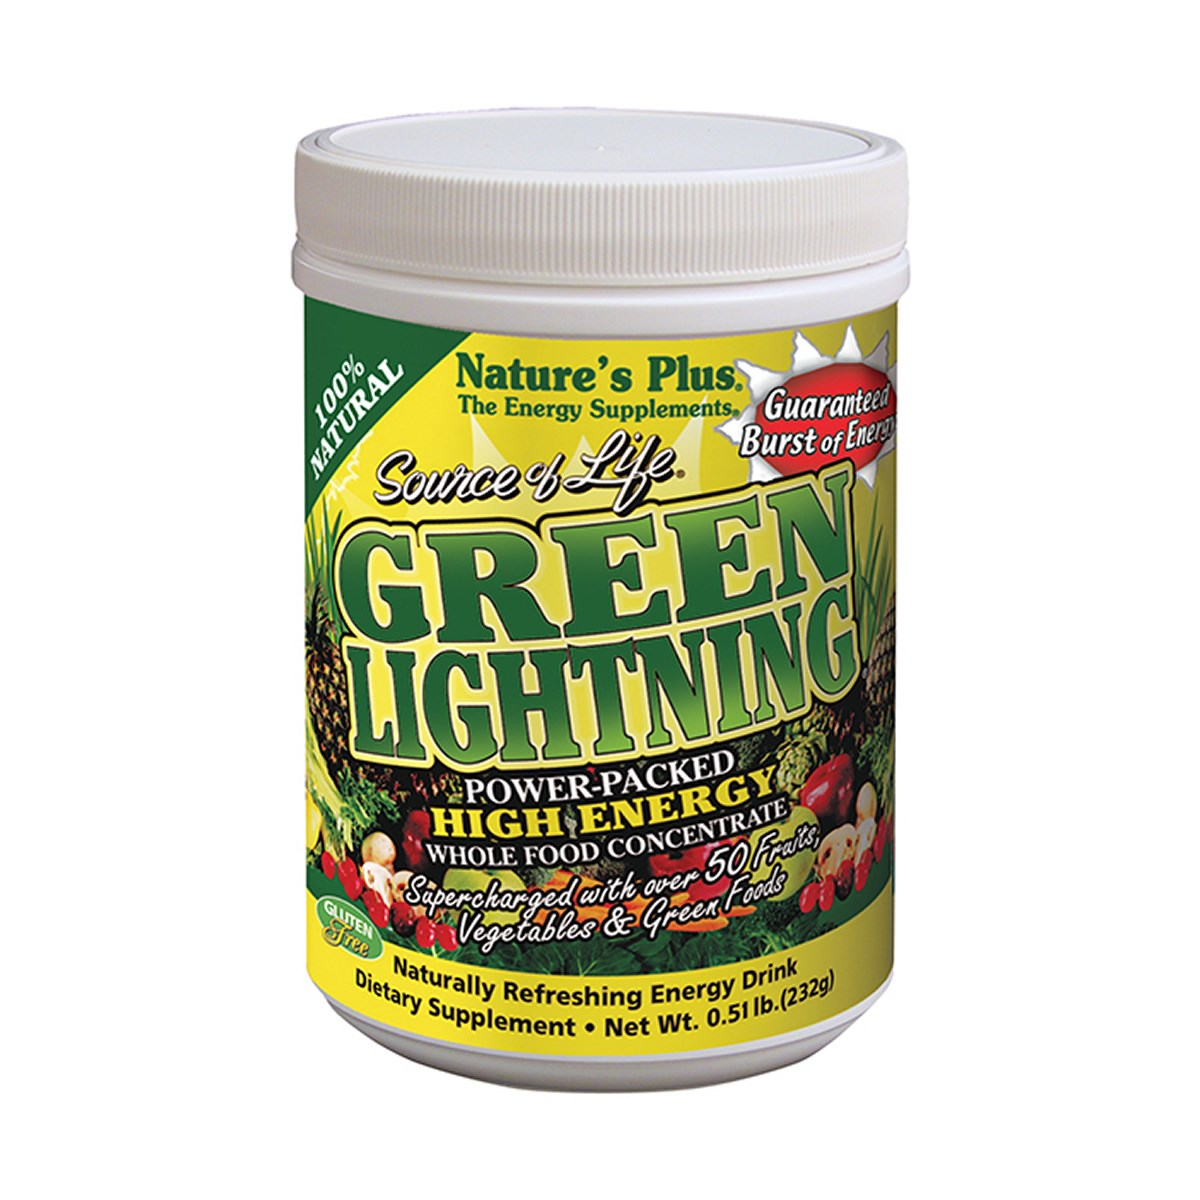 Natures Plus Source of Life Green Lightning Energy Drink